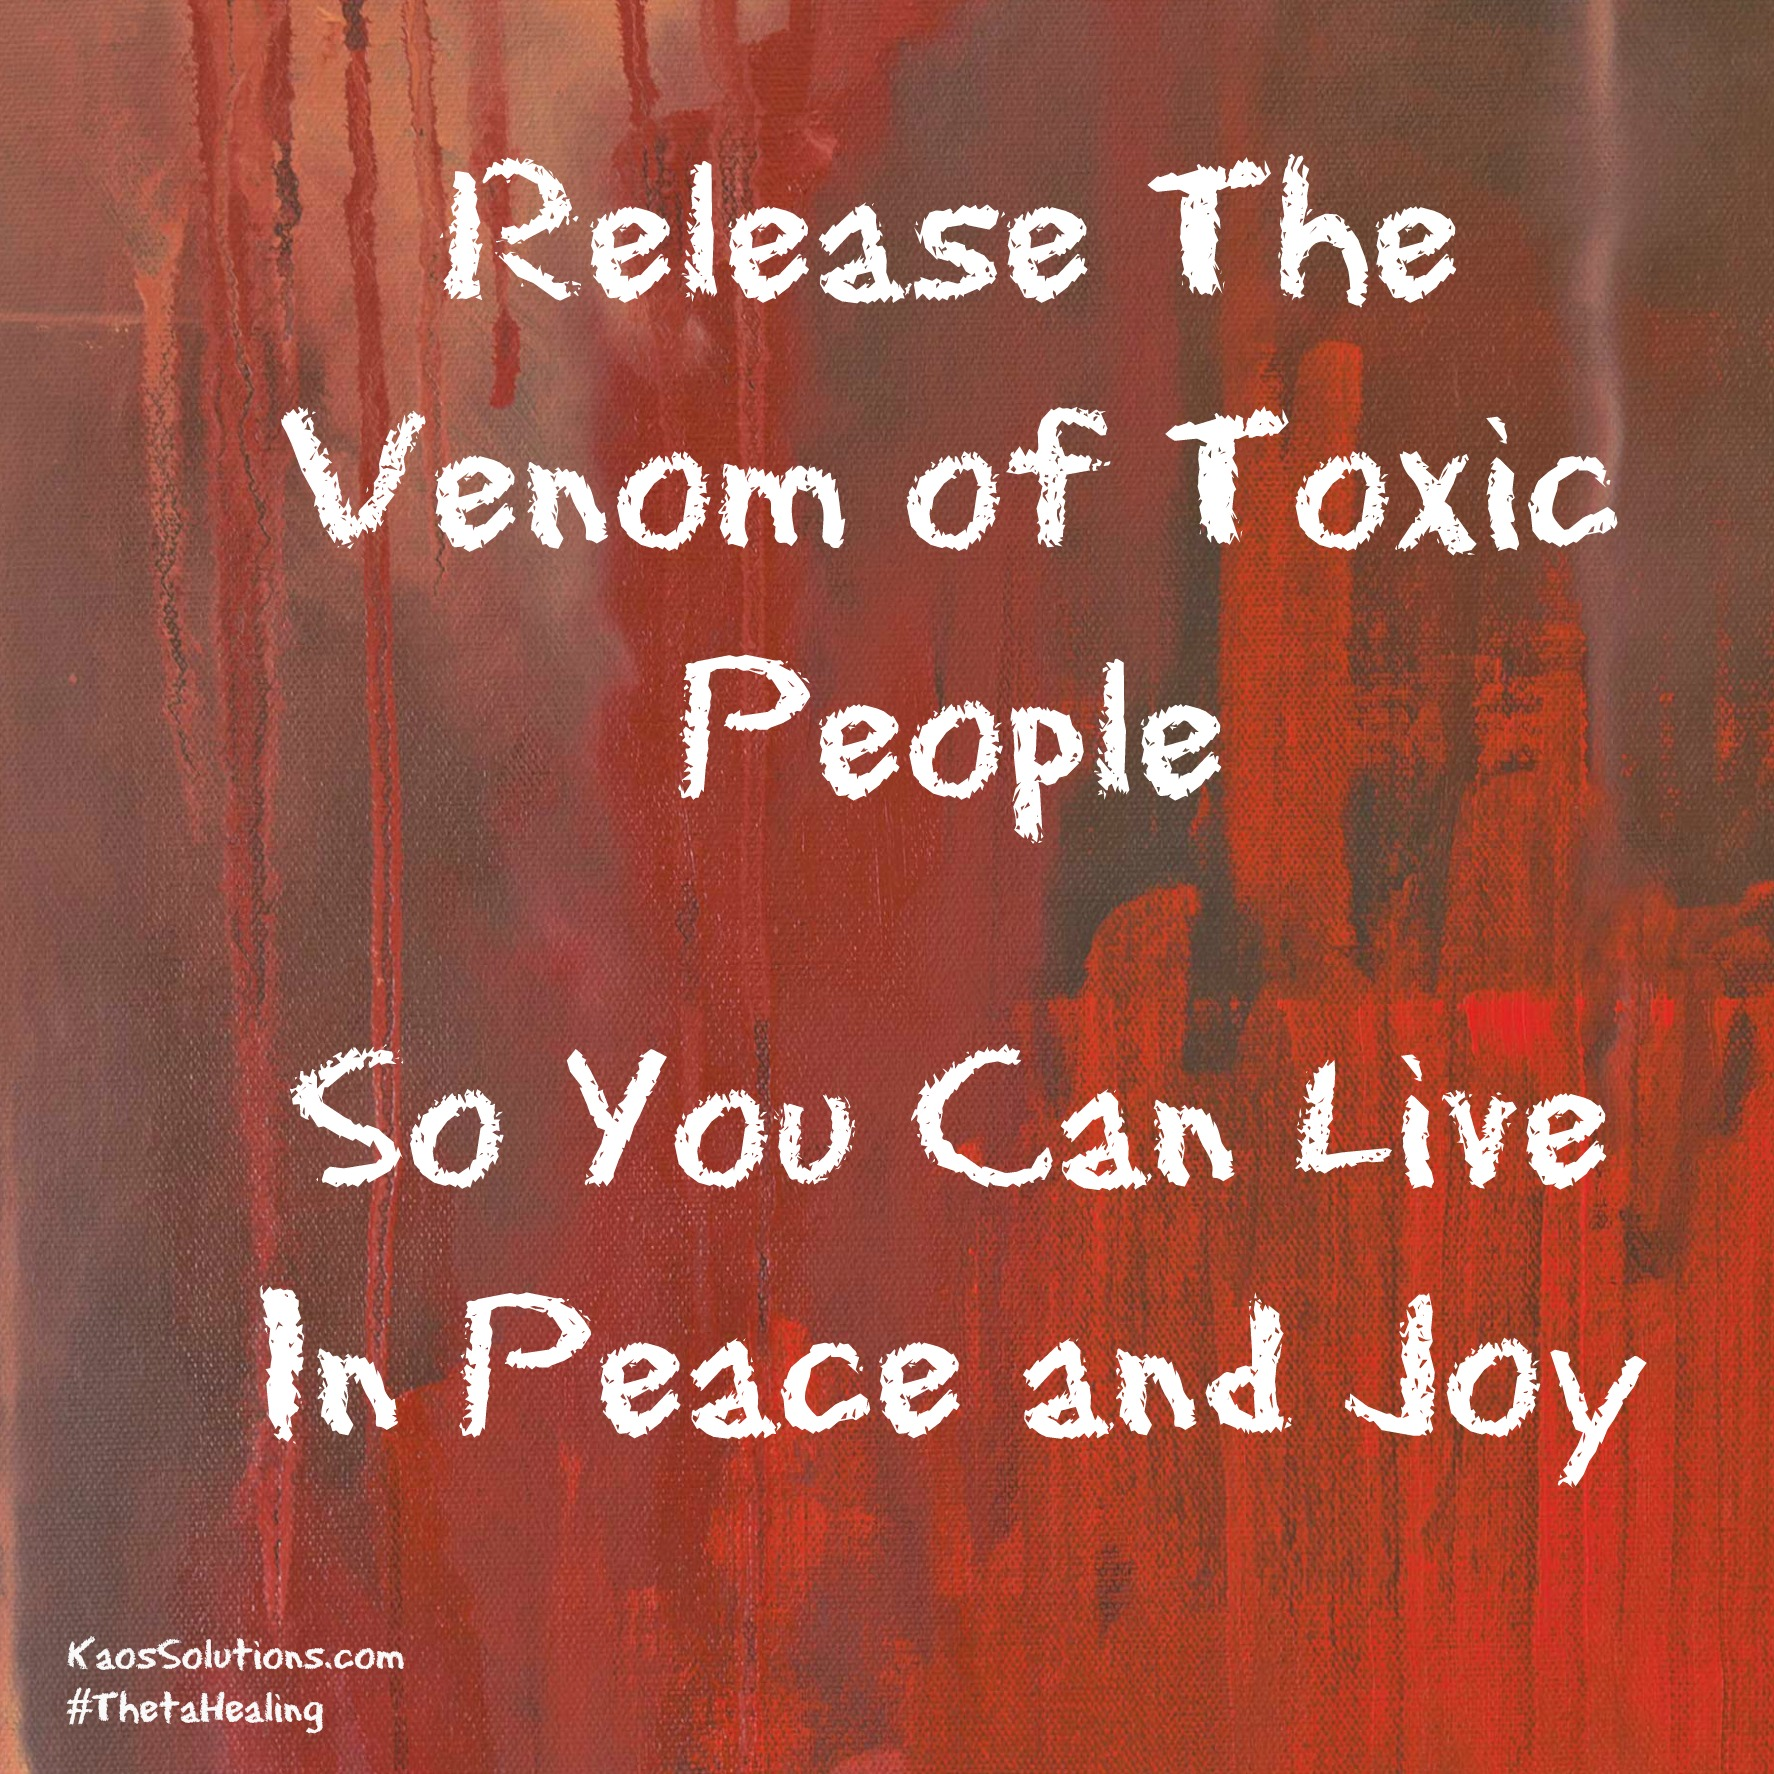 Release the venom of toxic people so you can live in peace and joy